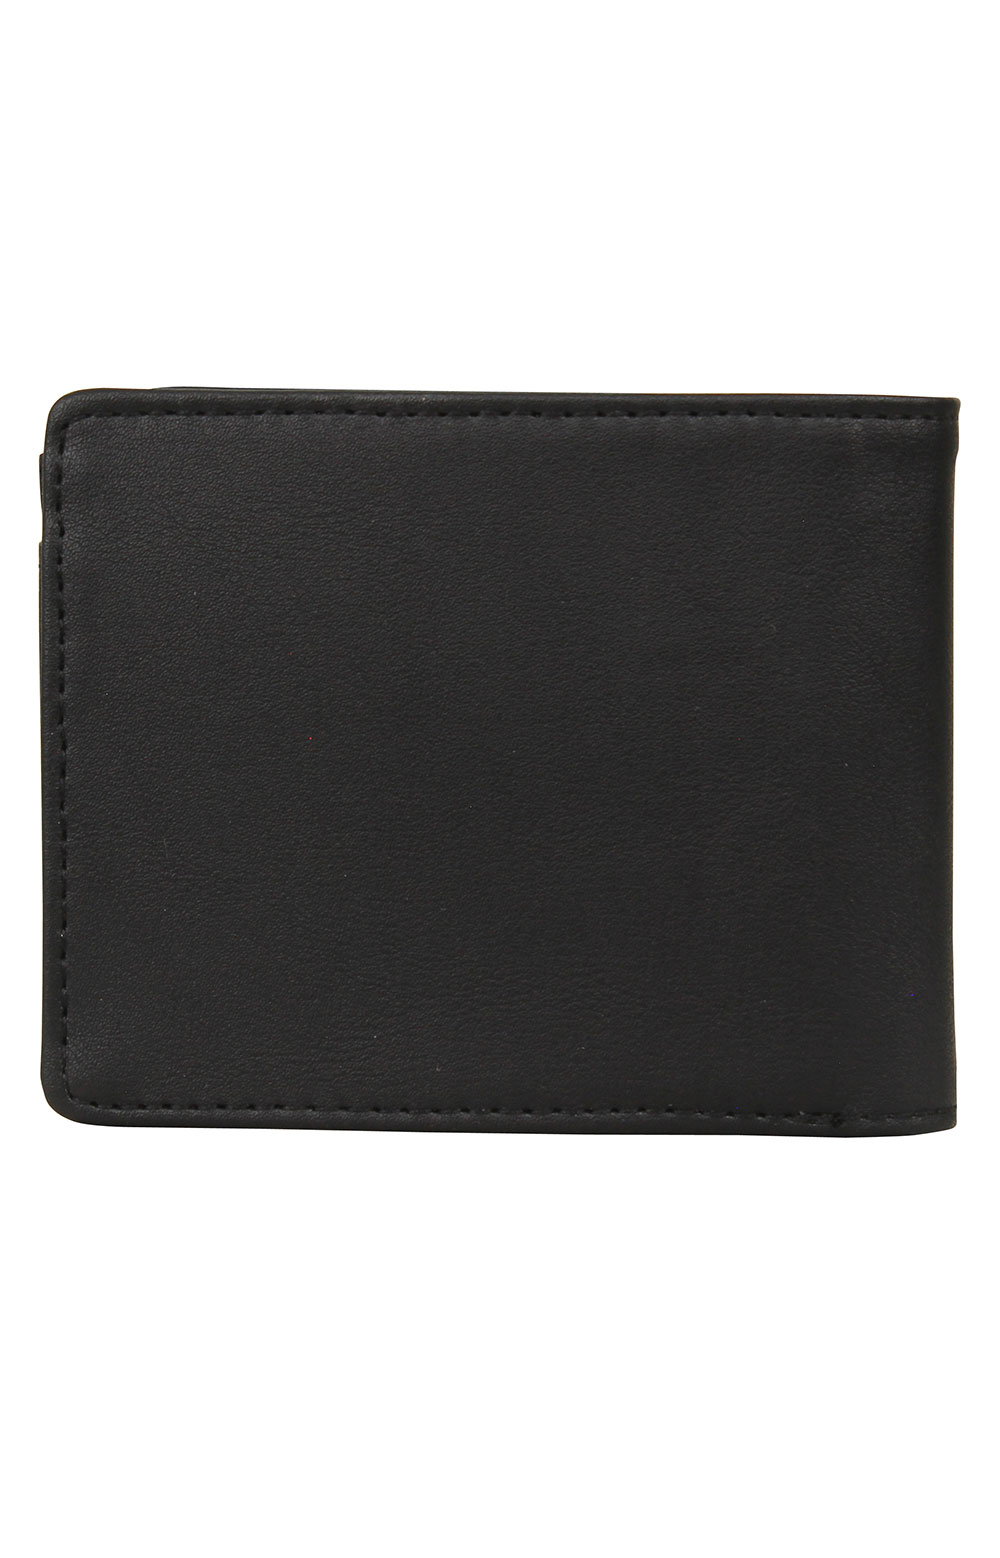 Vans Logo Wallet - Black 2